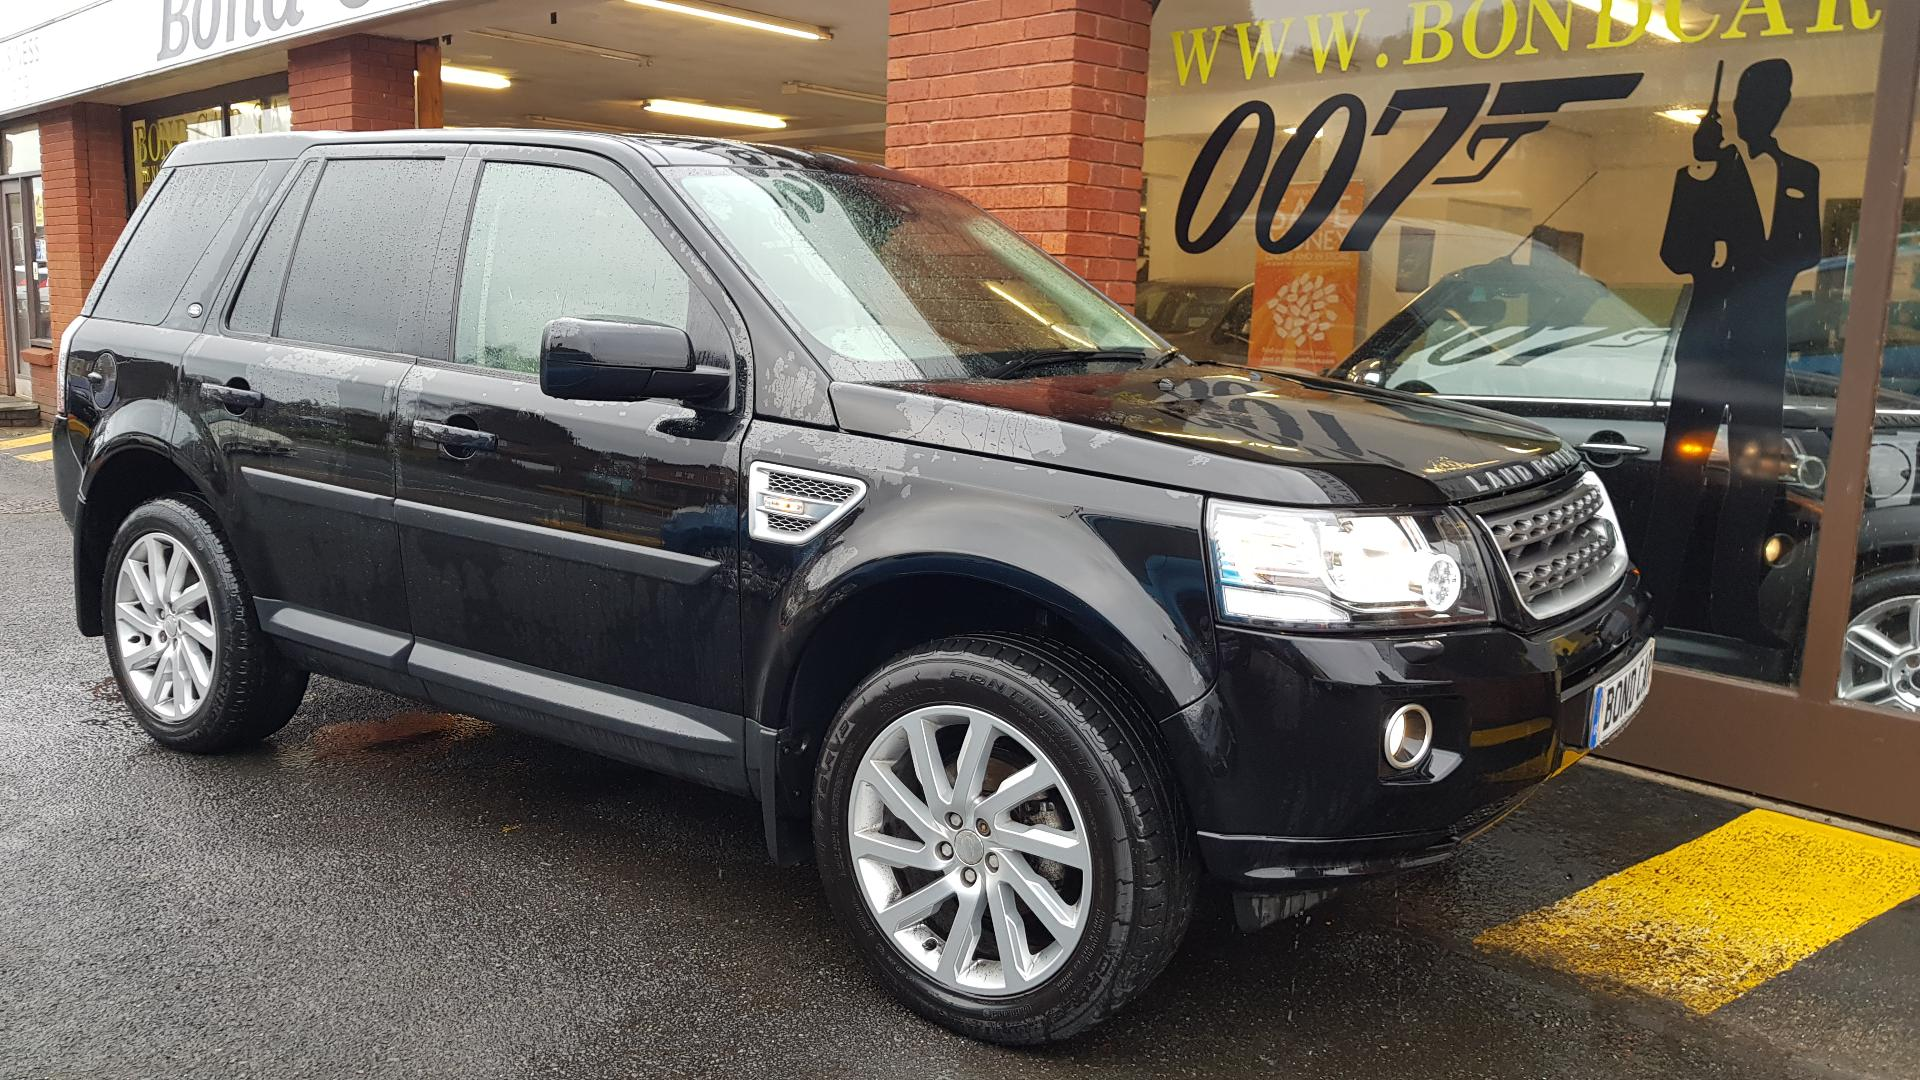 2011 (60) Land Rover Freelander 2.2 TD4 S Nav and Media 4x4 For Sale In Swansea, Glamorgan